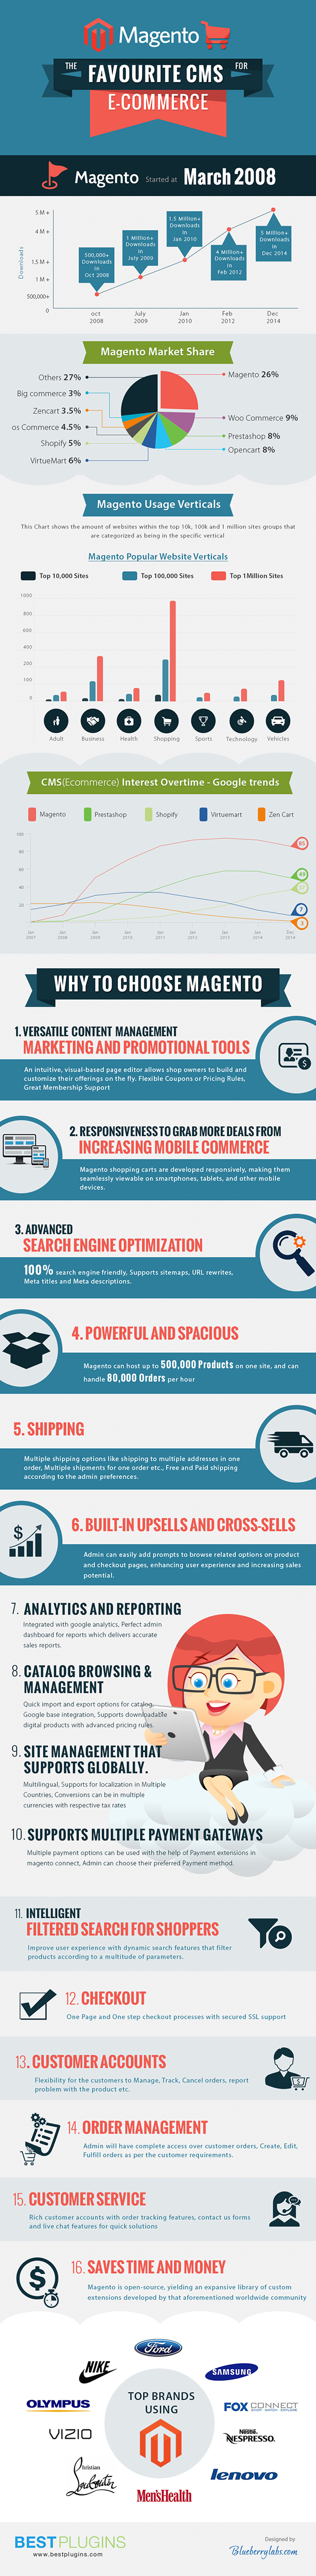 Magento---The-Favourite-CMS-for-Ecommerce